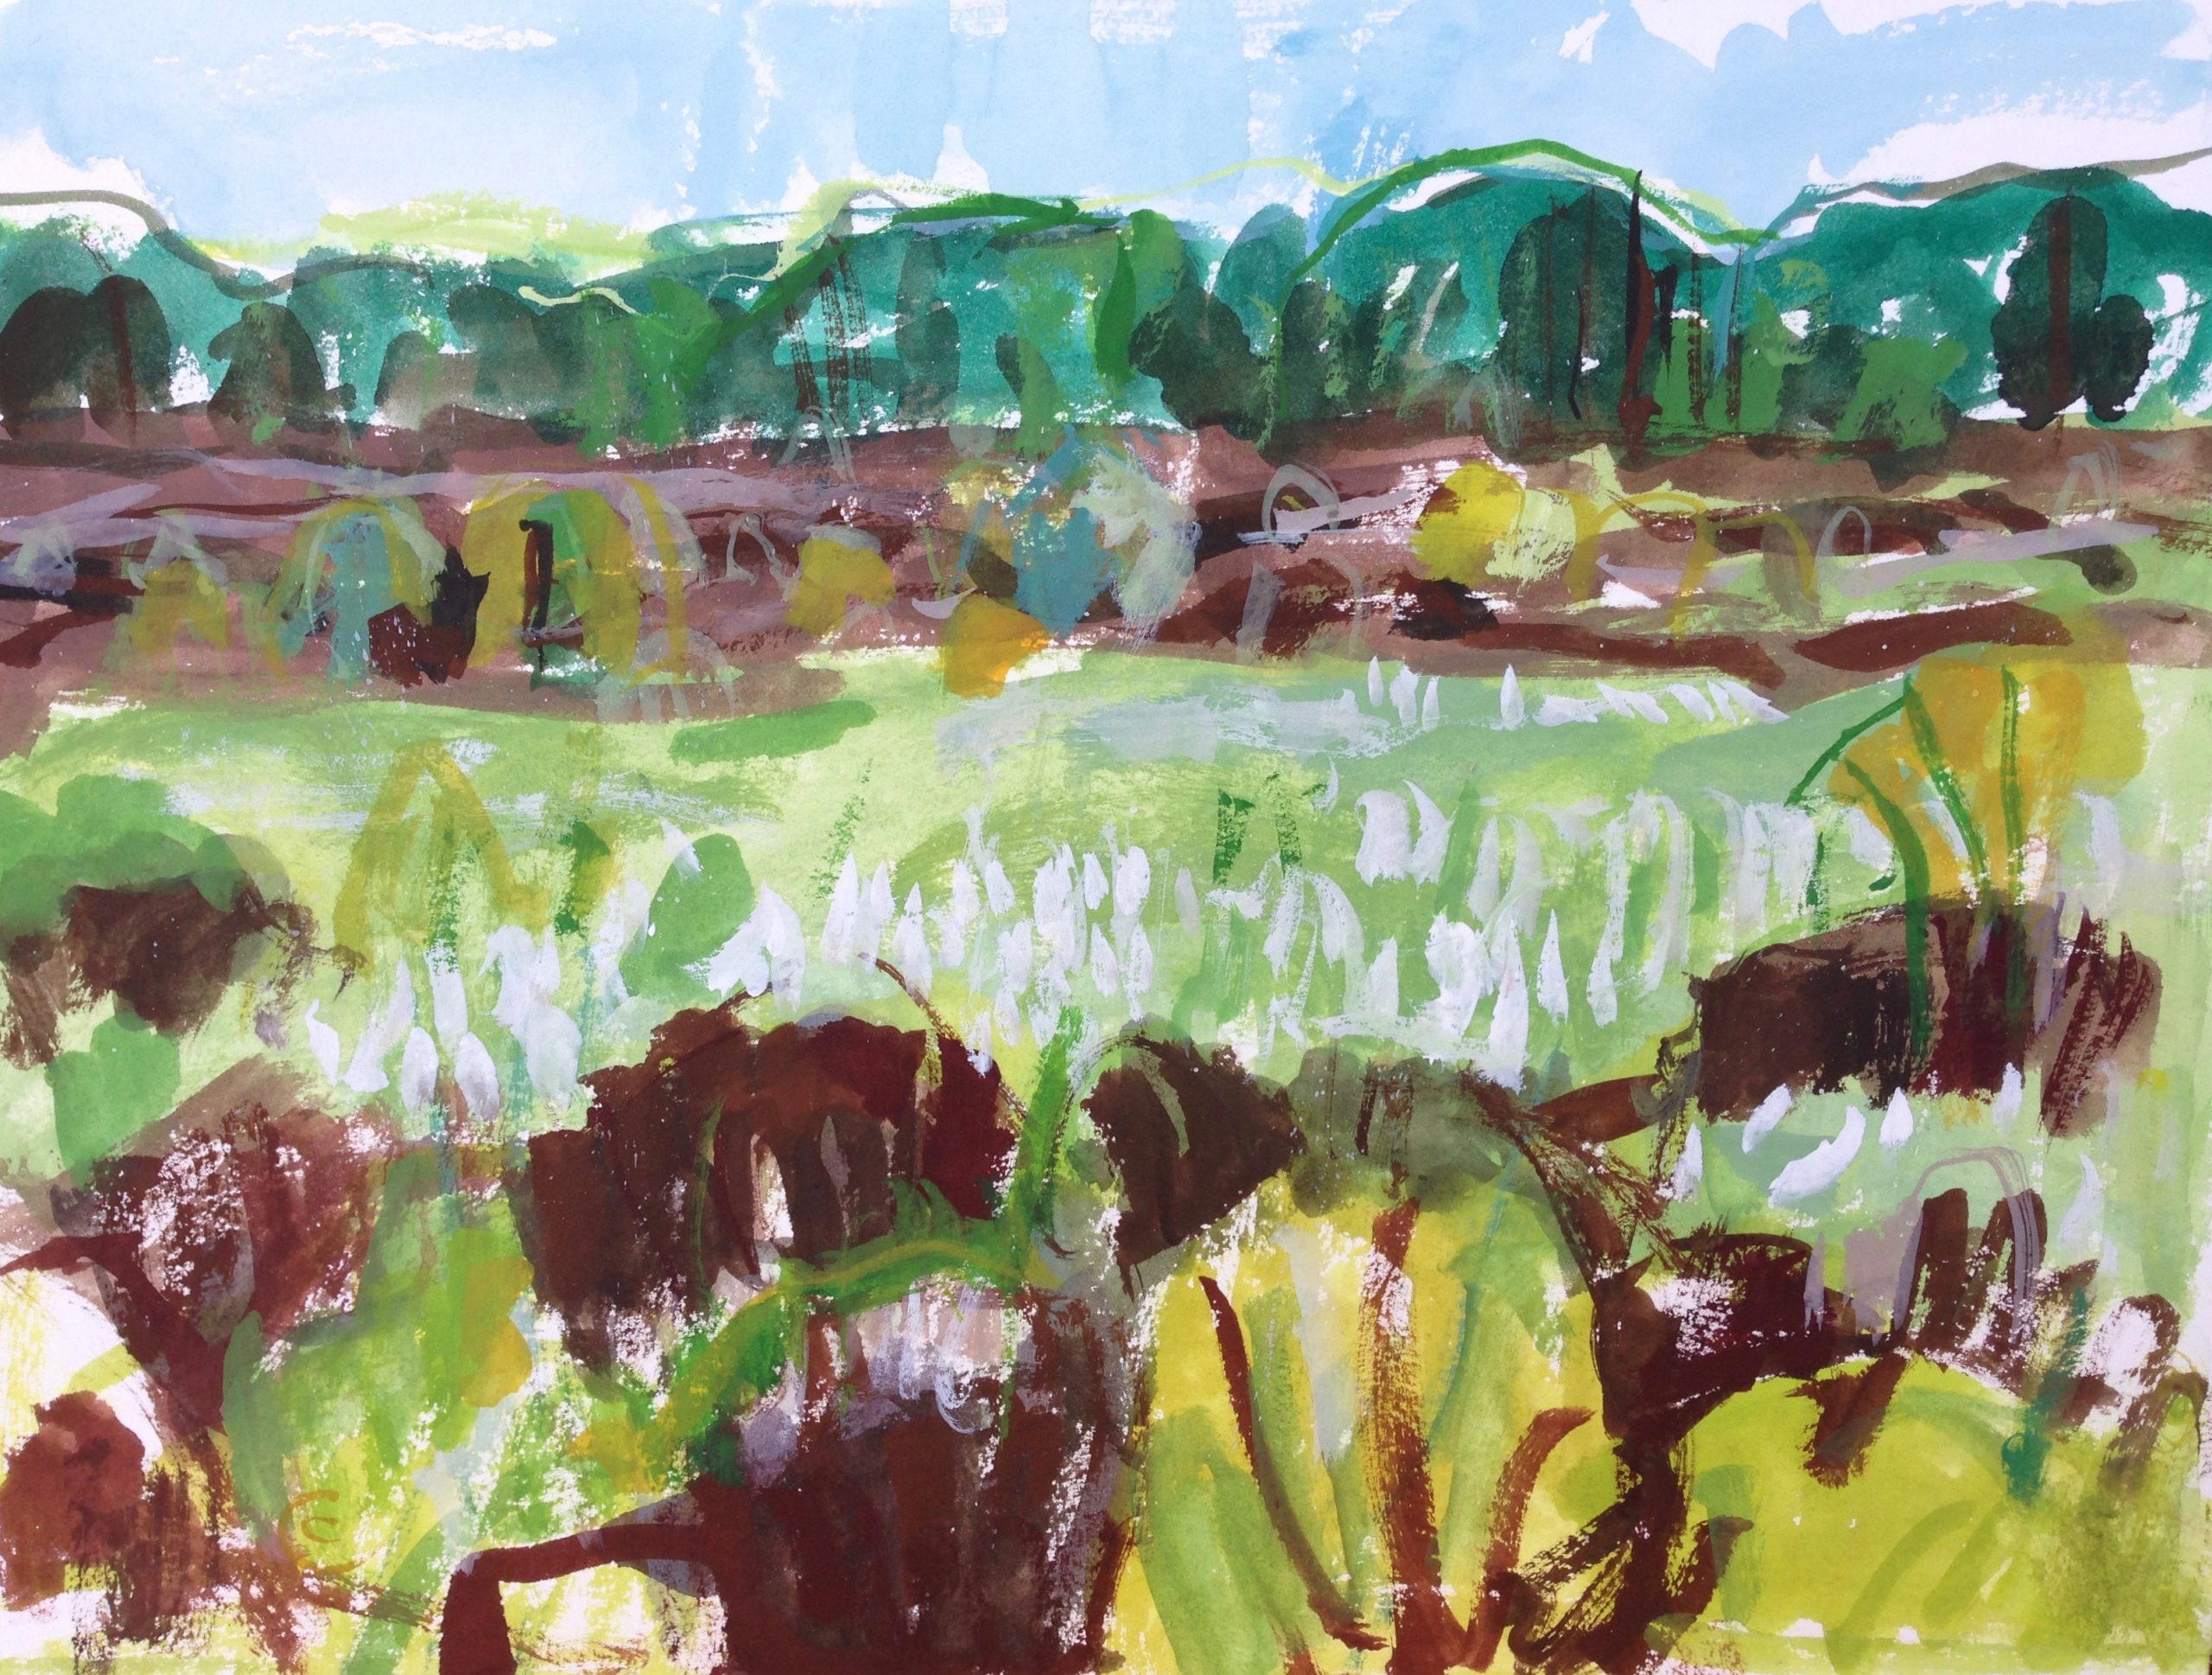 Cottongrass and Peat, Kirkconnell Flow